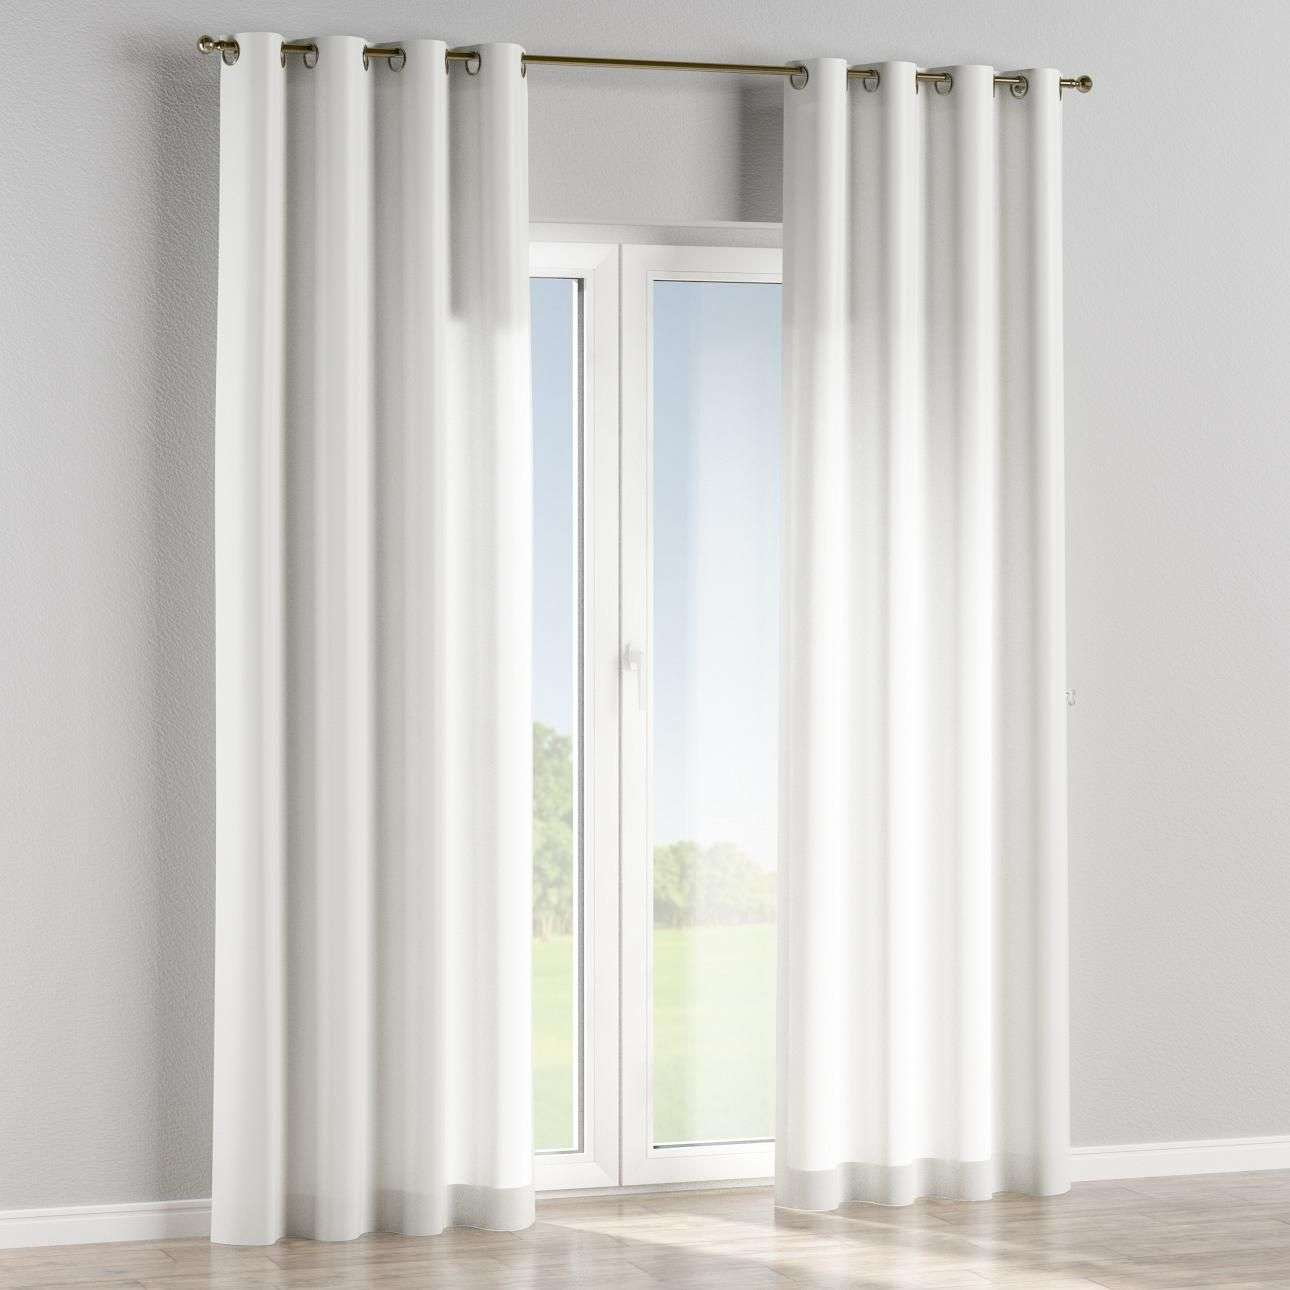 Eyelet lined curtains in collection Venice, fabric: 140-54